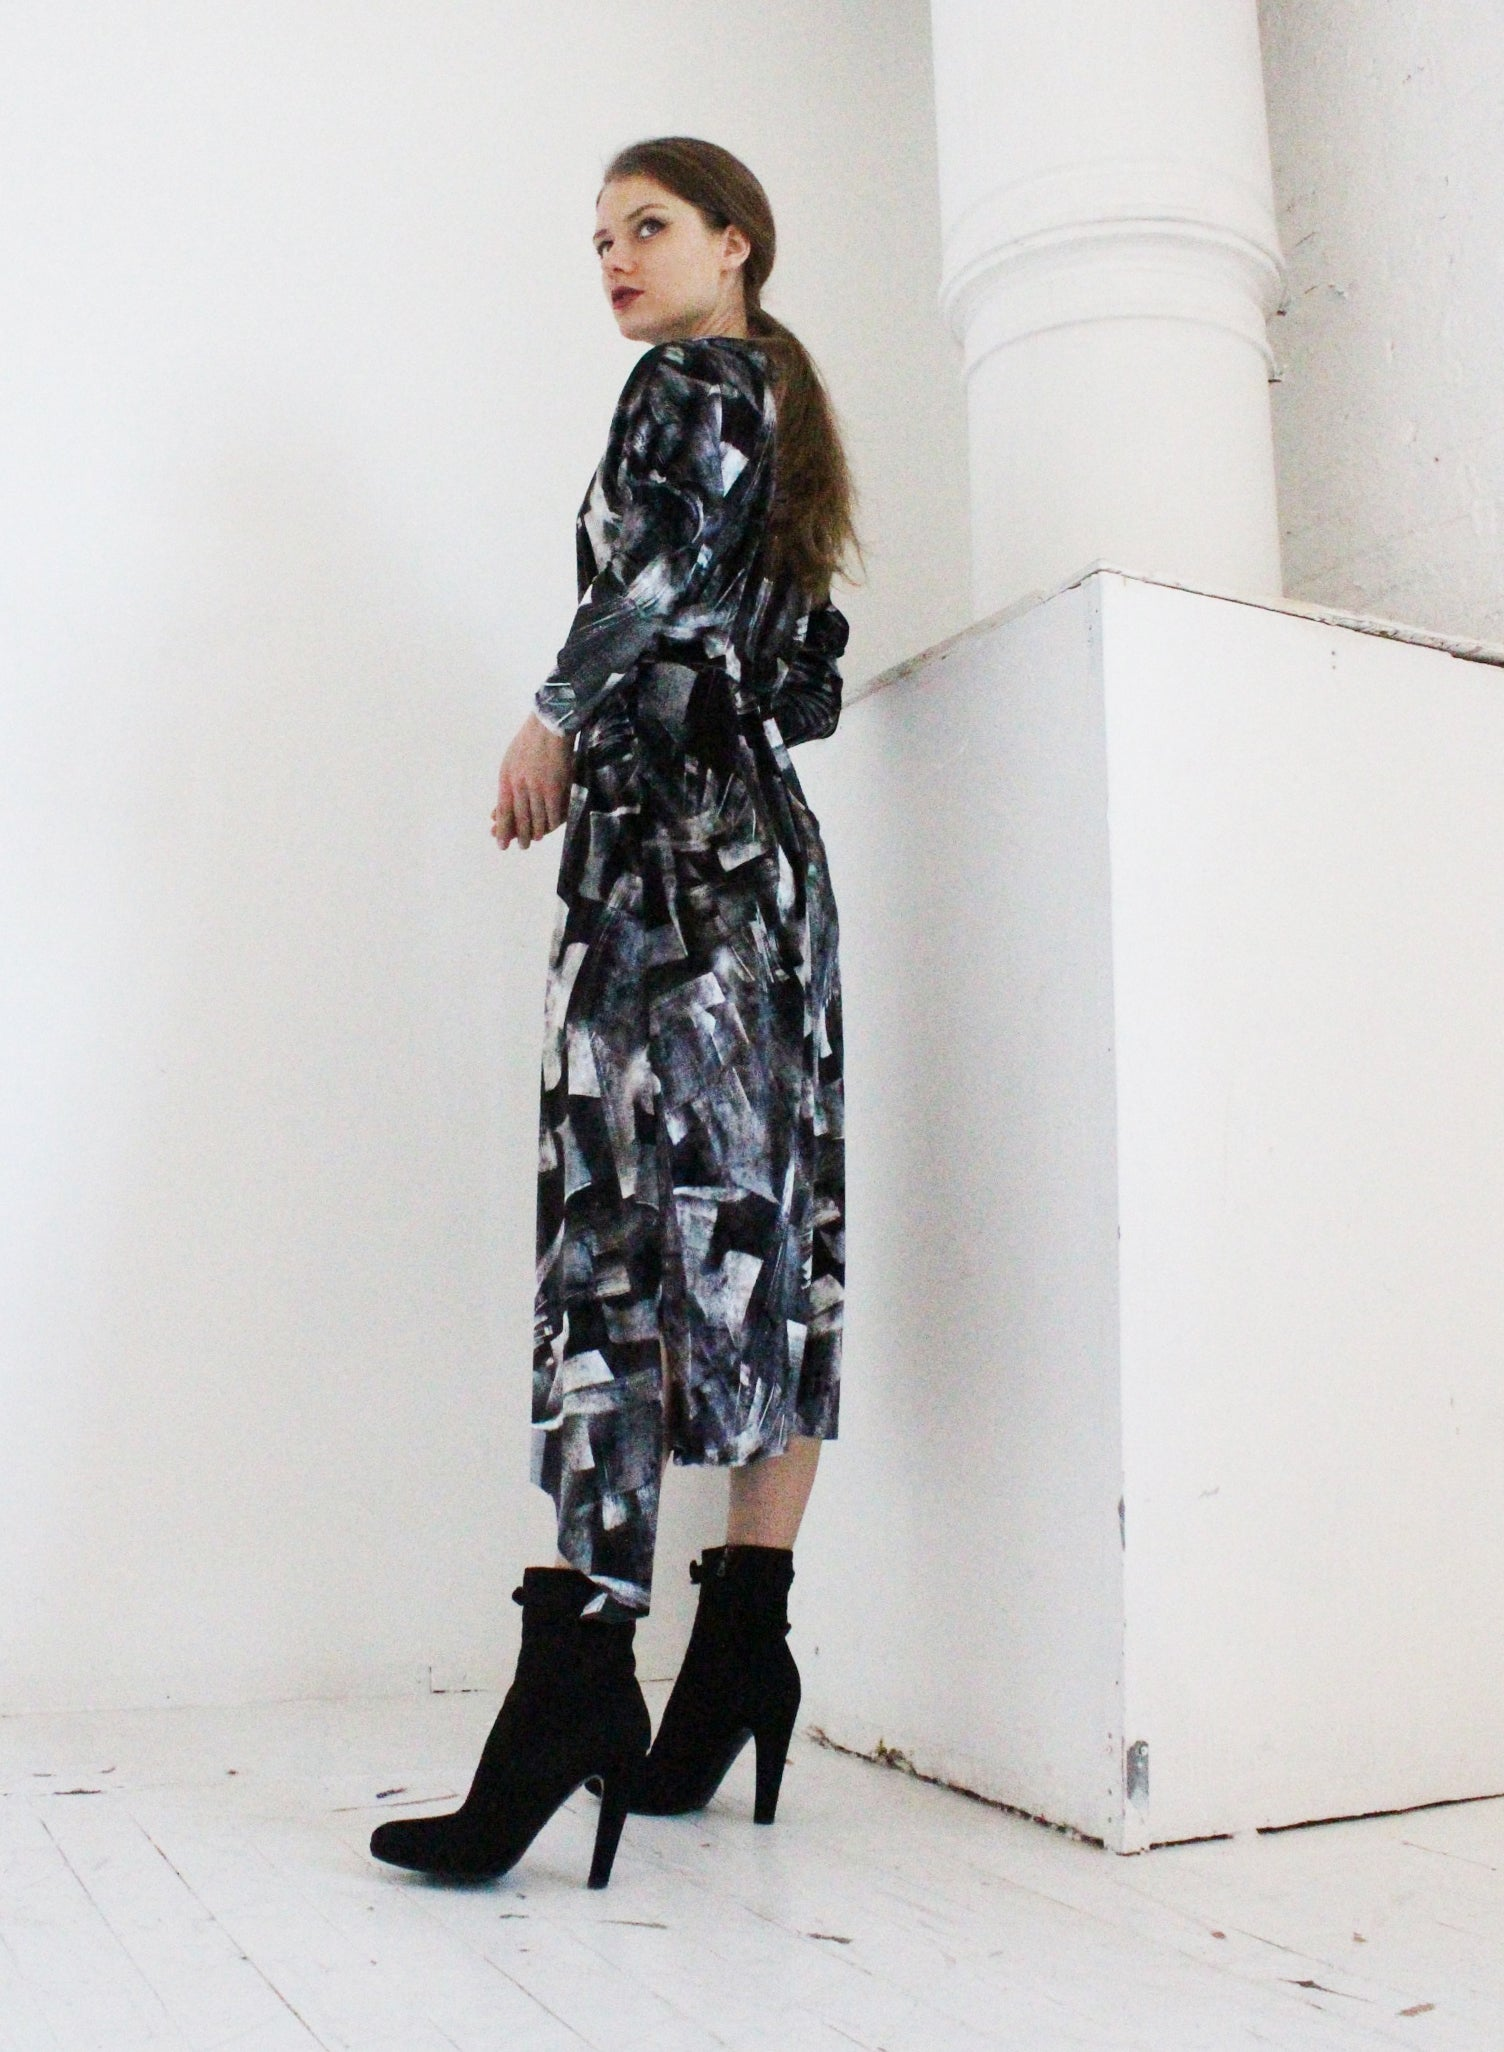 Ying Cai _ AW 21 Look 11 - 6